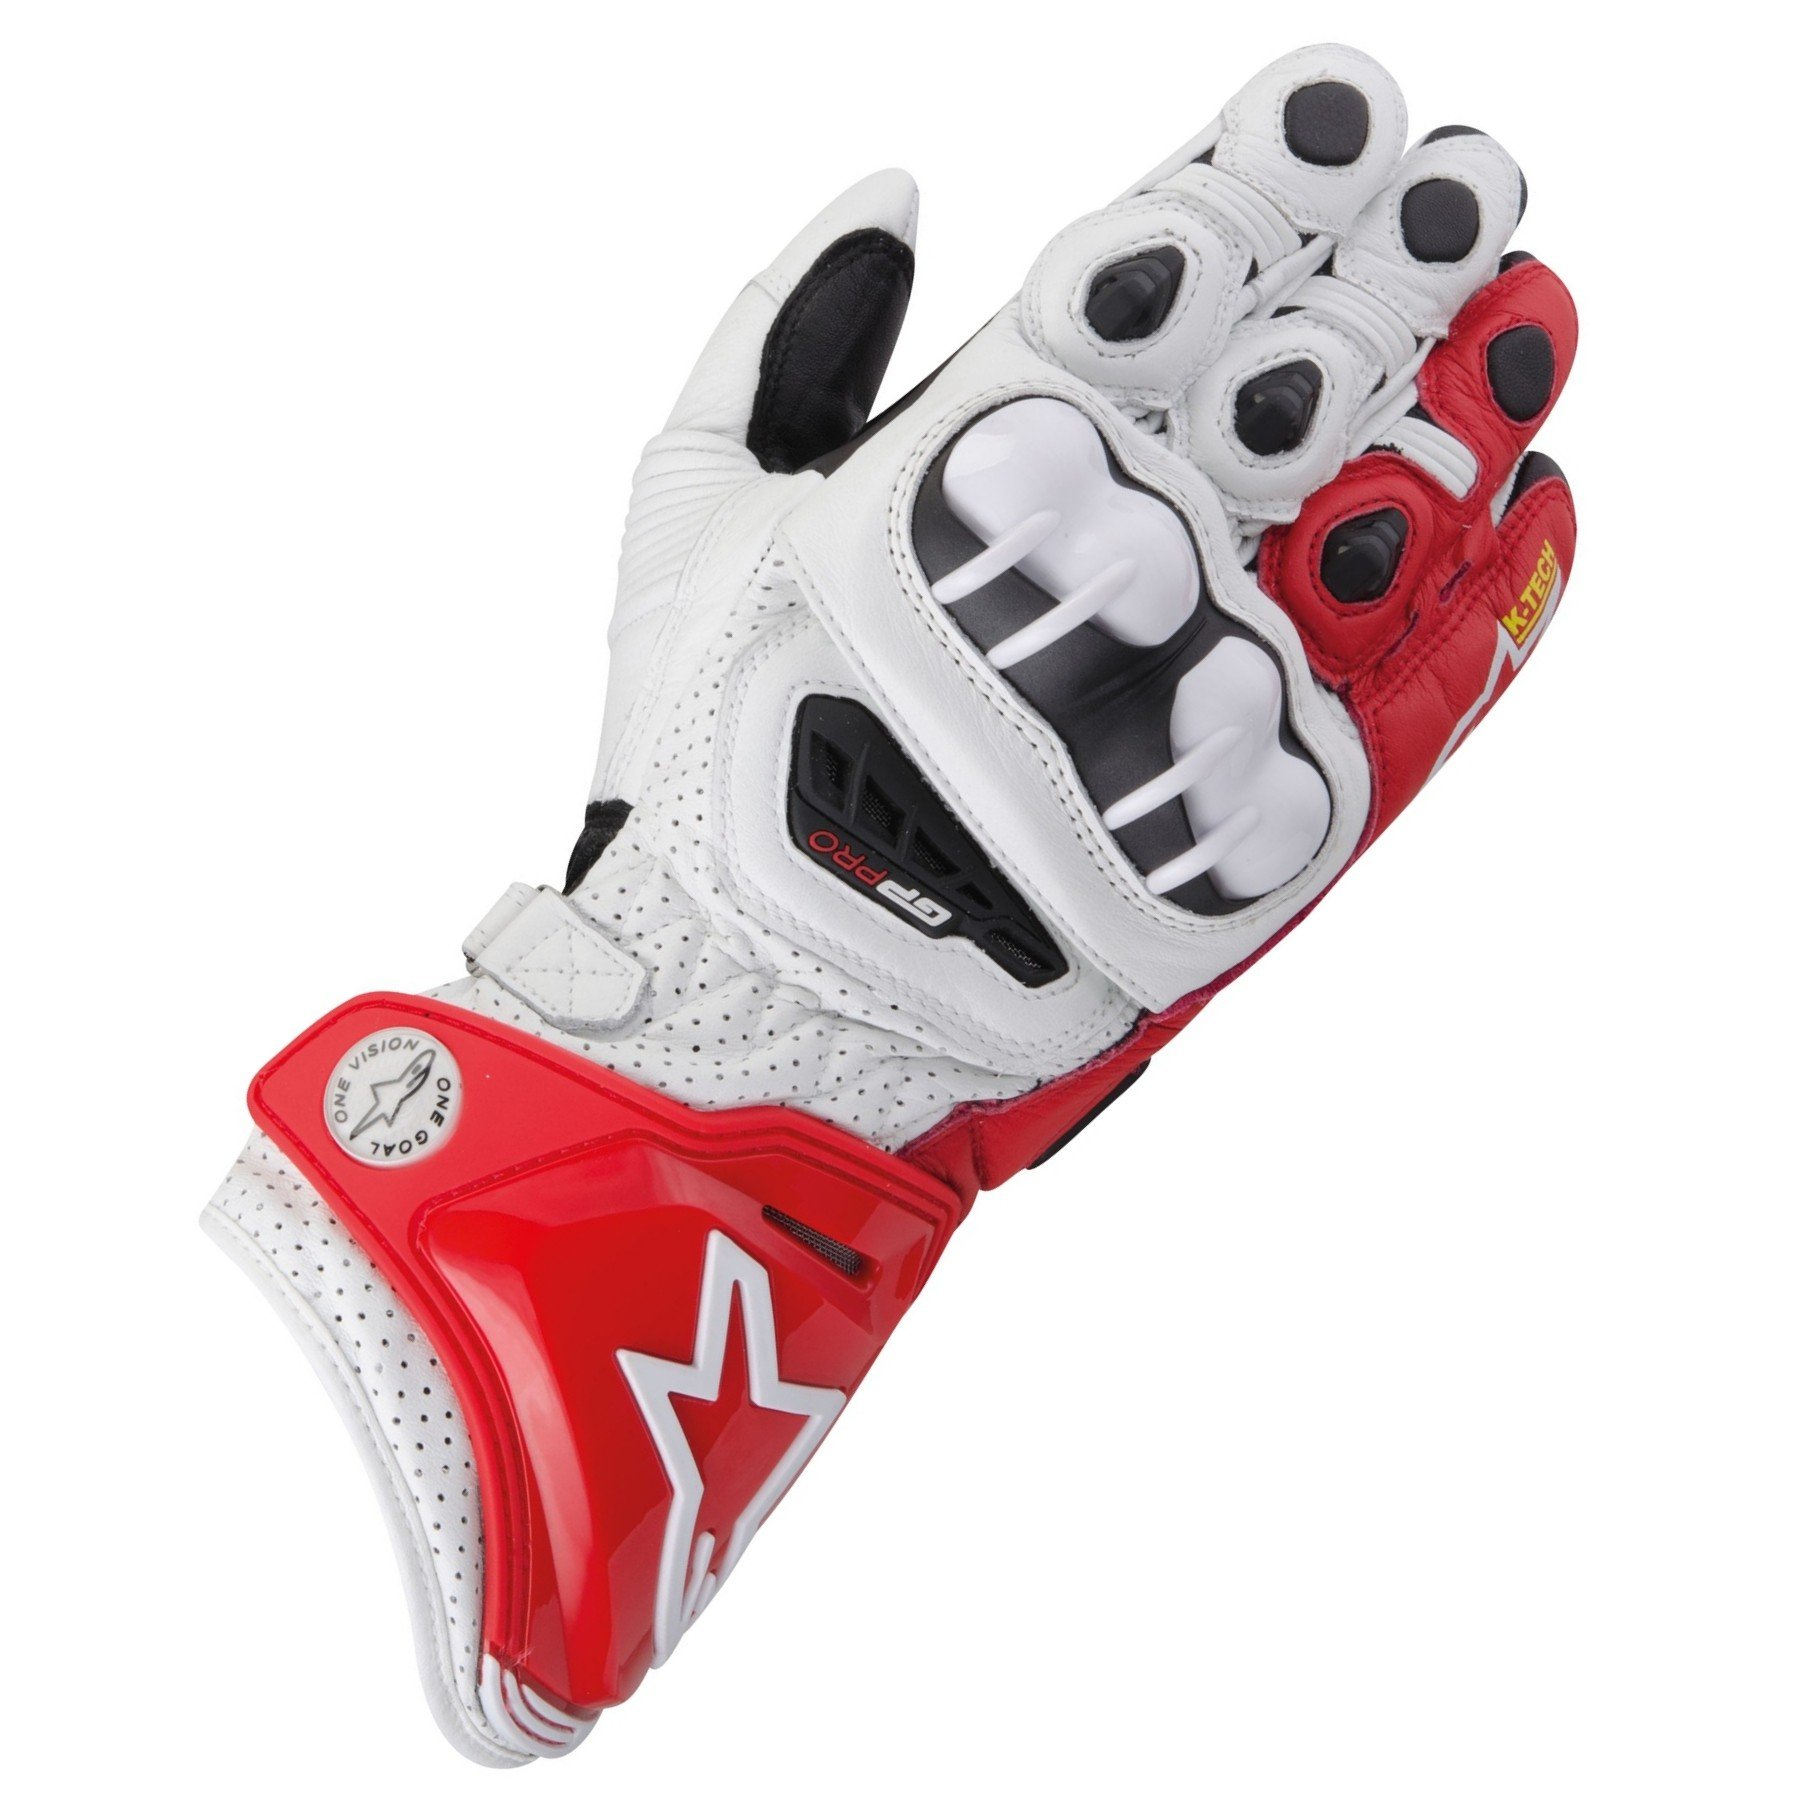 Alpinestars GP PRO P-Pro White/Red M